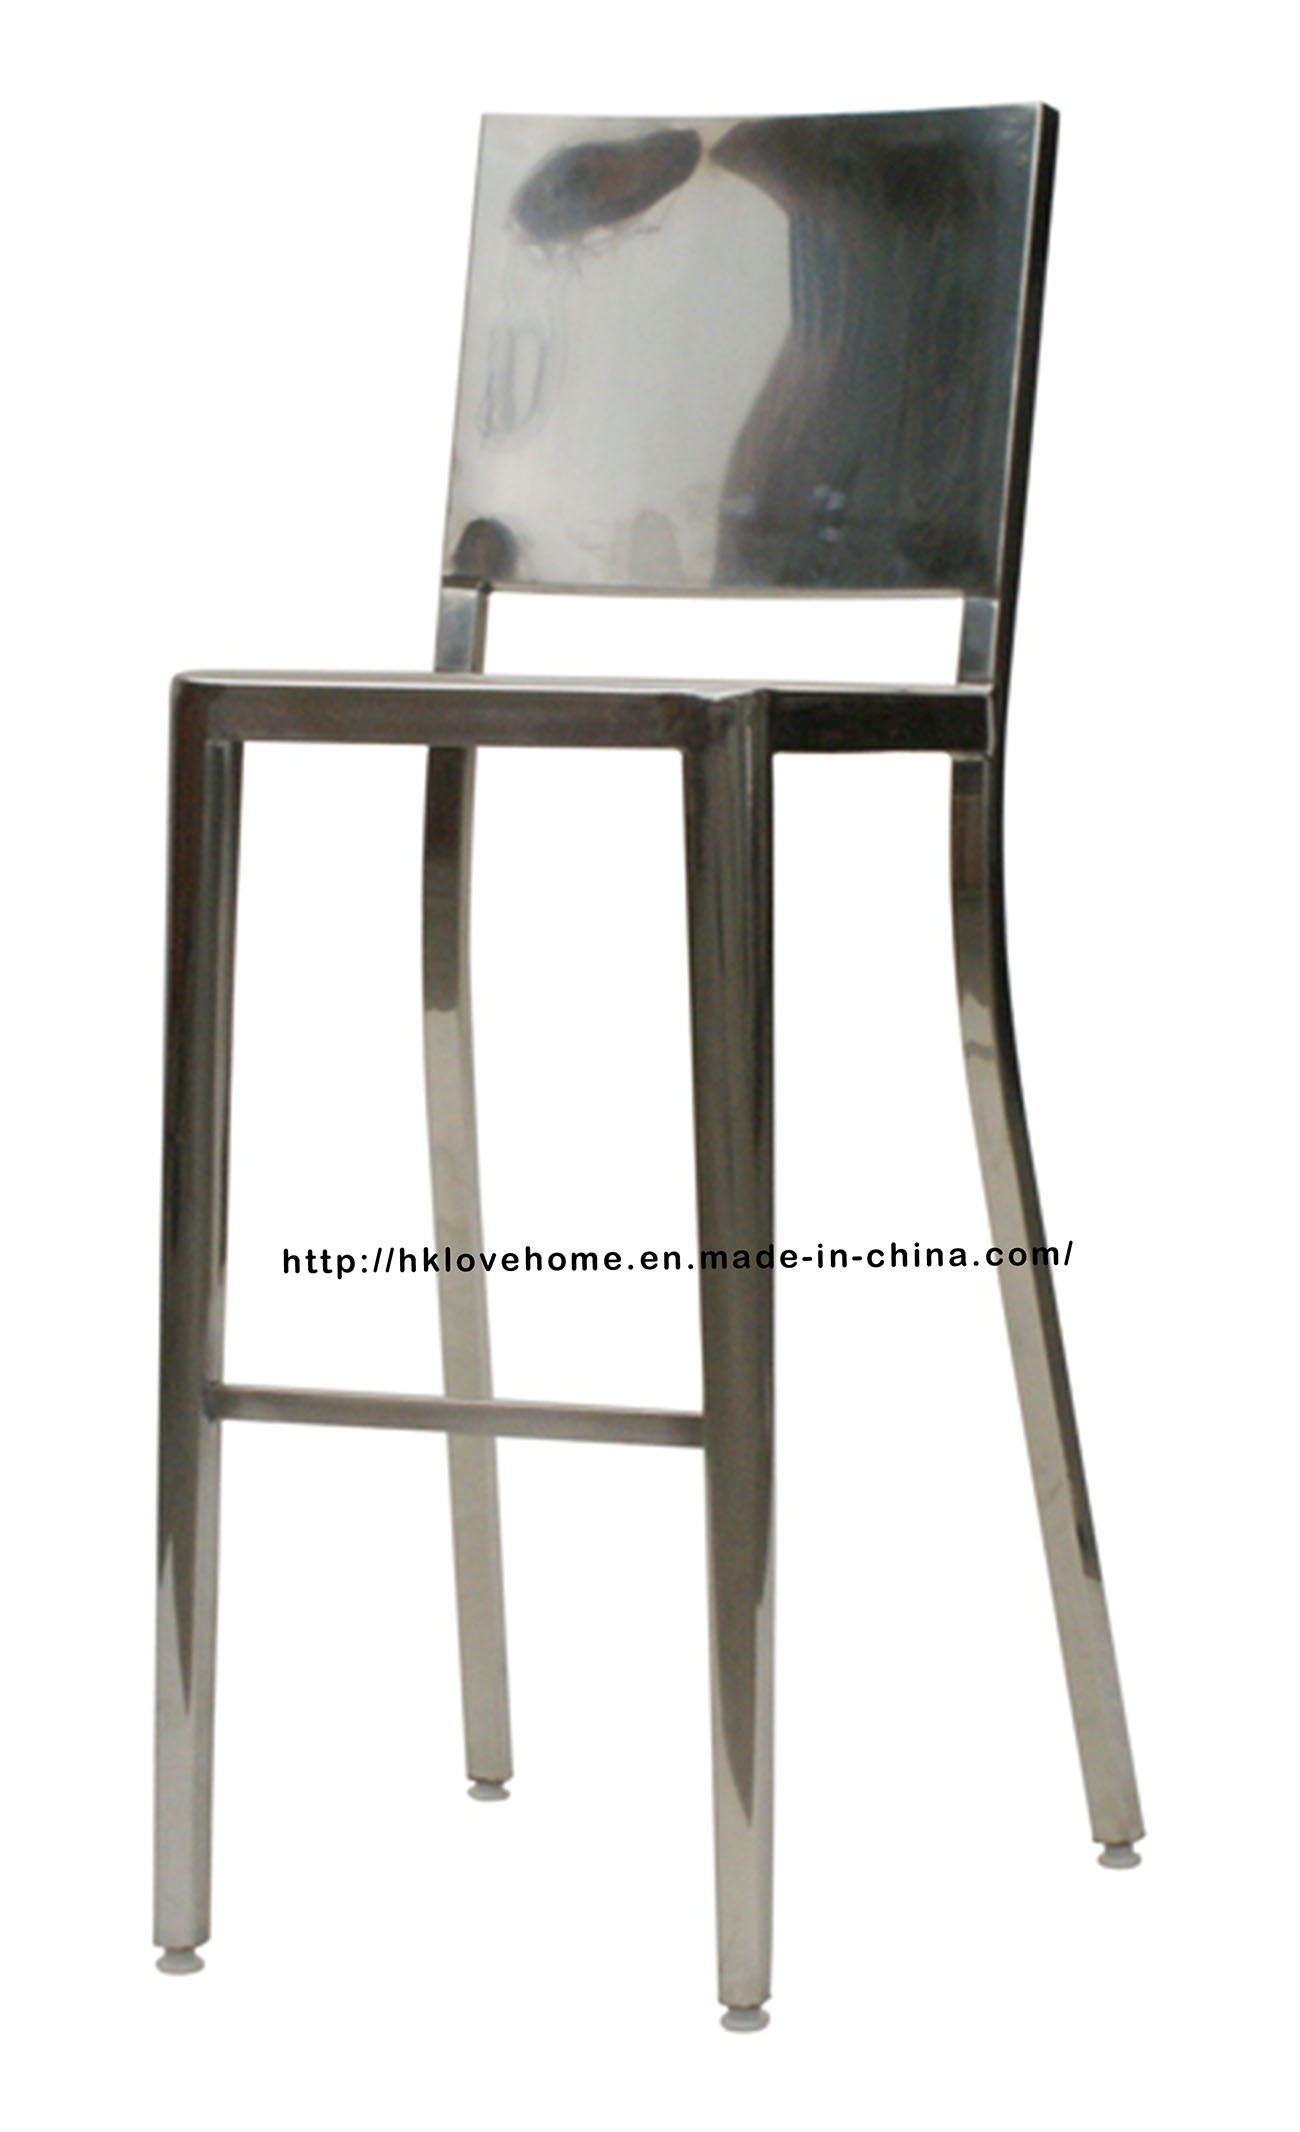 Emeco Dining Restaurant Stainless Steel Navy High Bar Stools Chairs  sc 1 st  HONG KONG LOVE HOME PRODUCTS LTD. & China Emeco Dining Restaurant Stainless Steel Navy High Bar Stools ... islam-shia.org